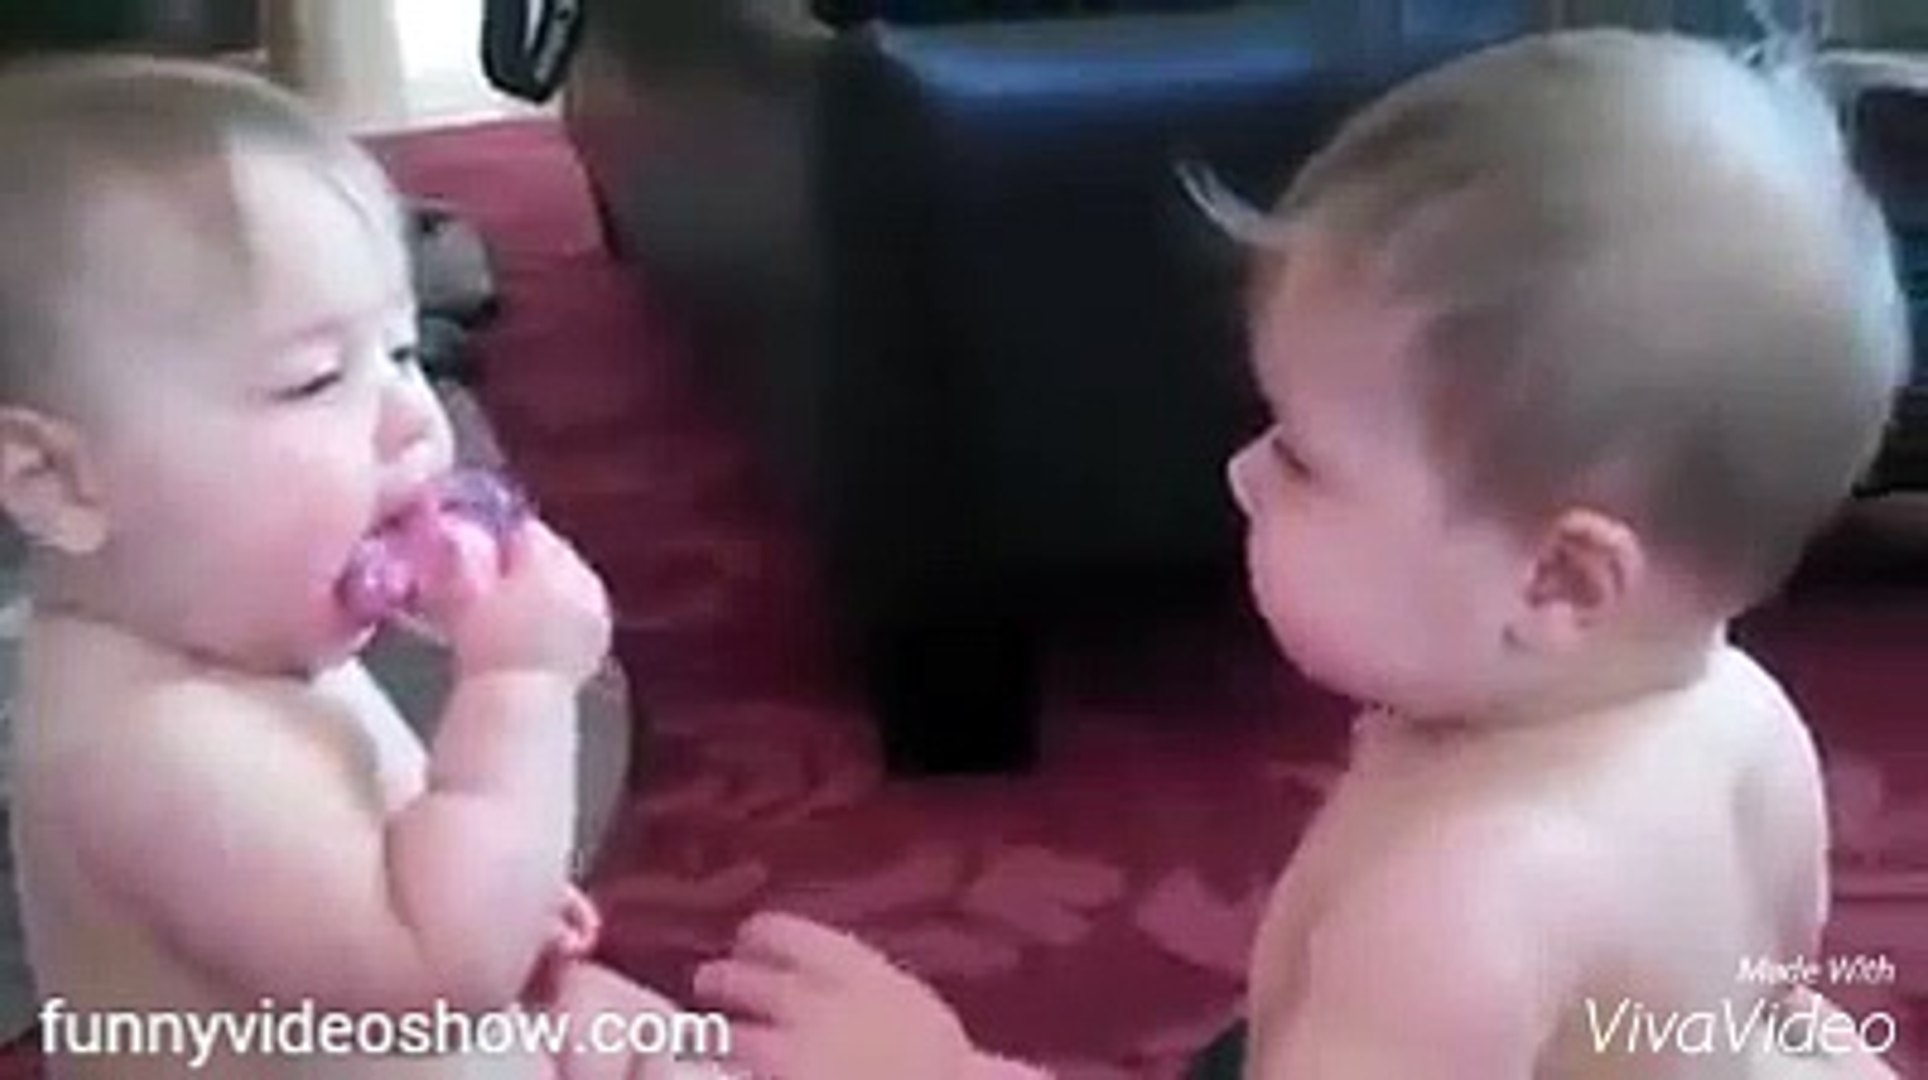 funny video show cute baby